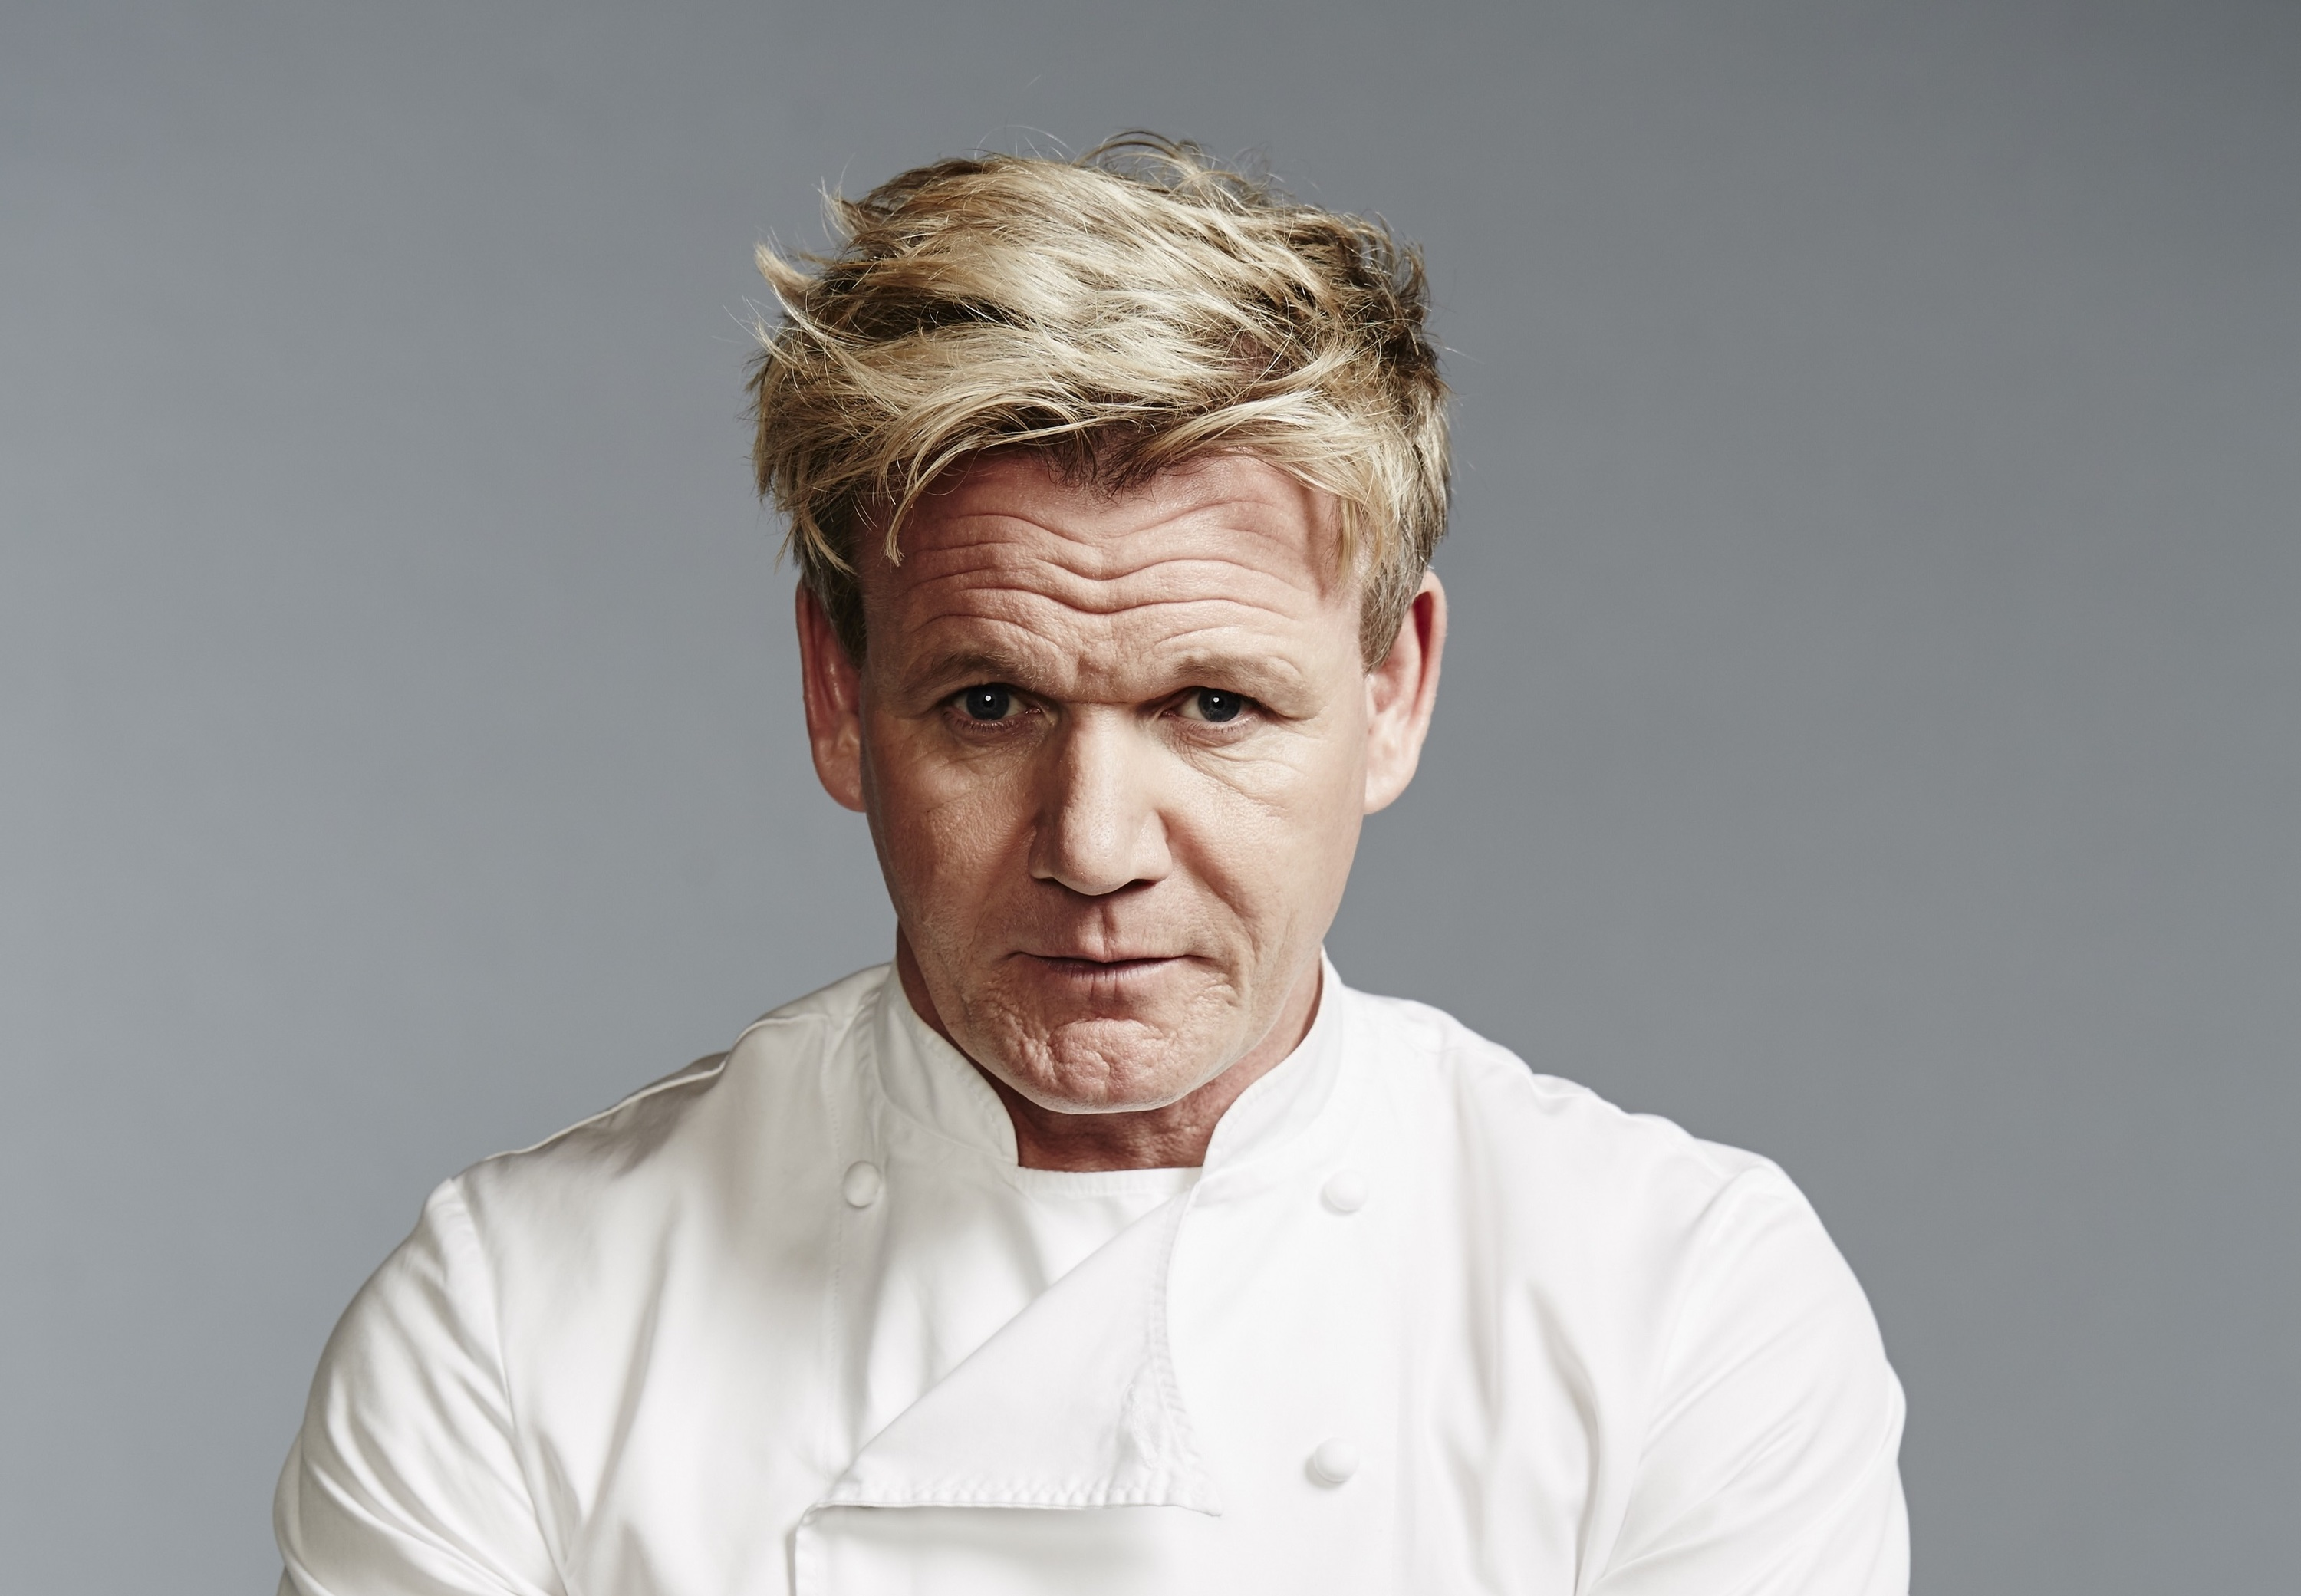 Watch: Gordon Ramsay on pineapple pizzas and the F word